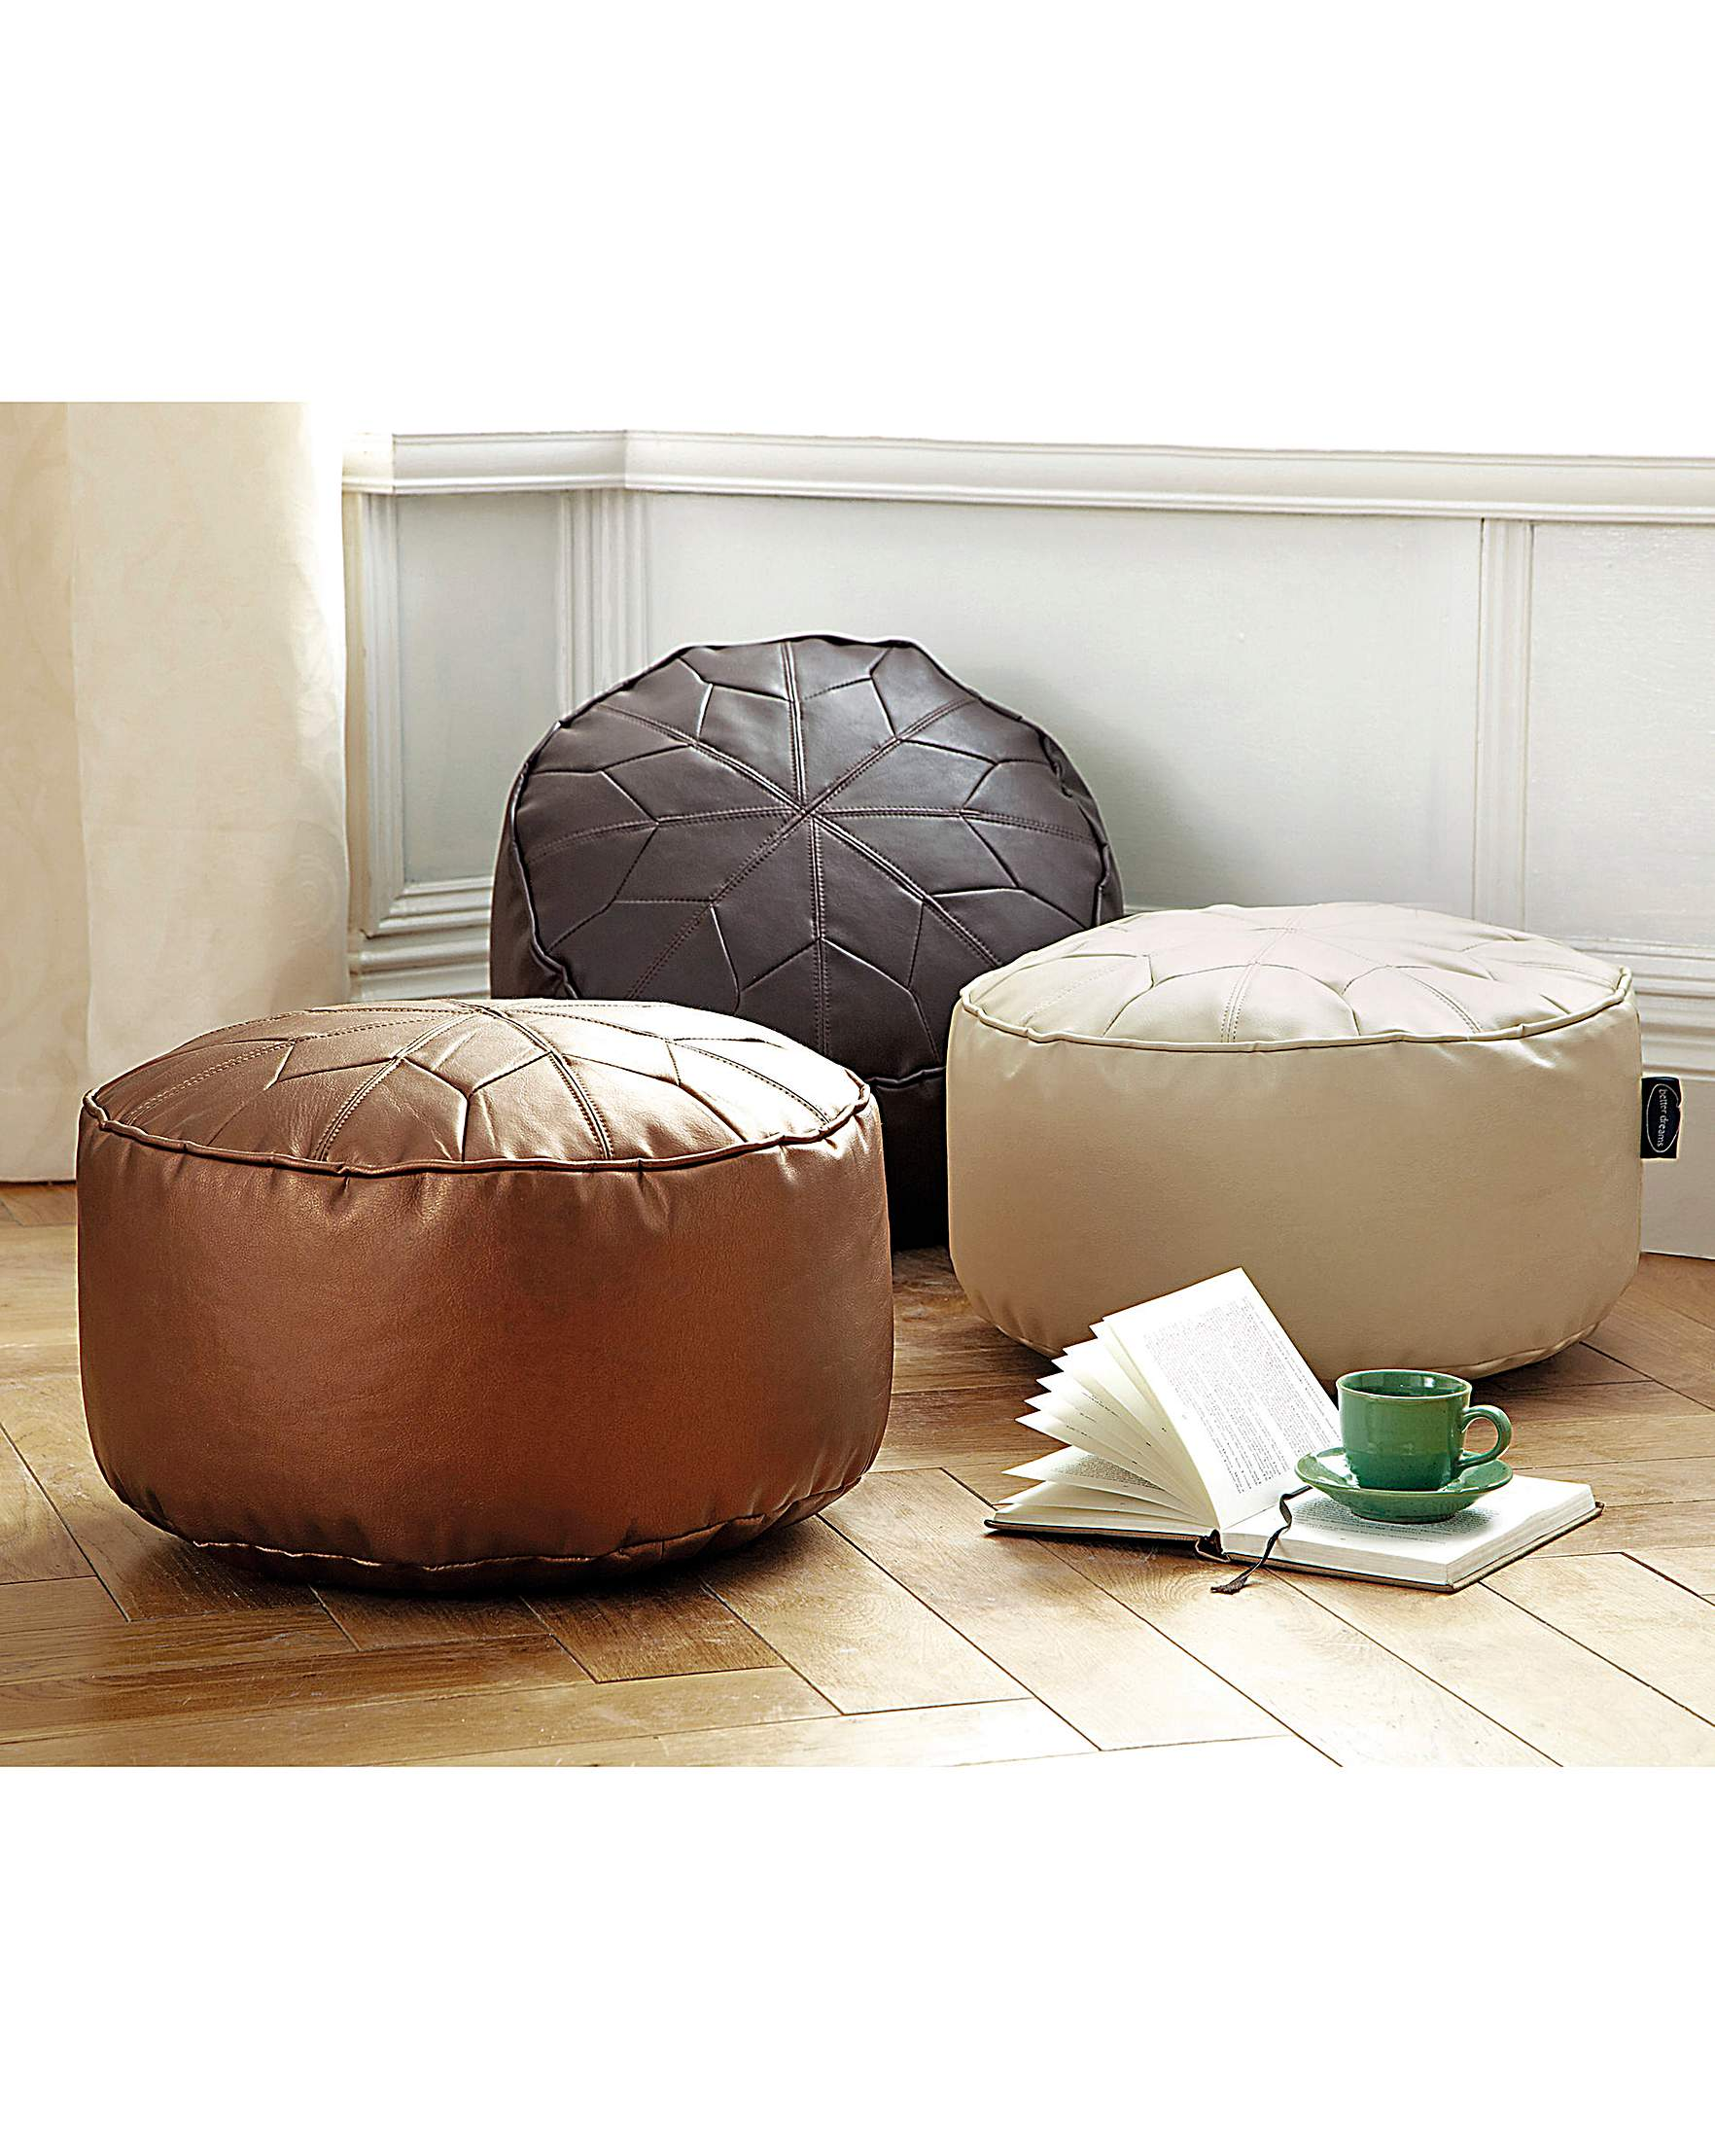 Moroccan Leather Pouf Design Sit Down Pinterest Leather Moroccan Star Design Pouffe Small